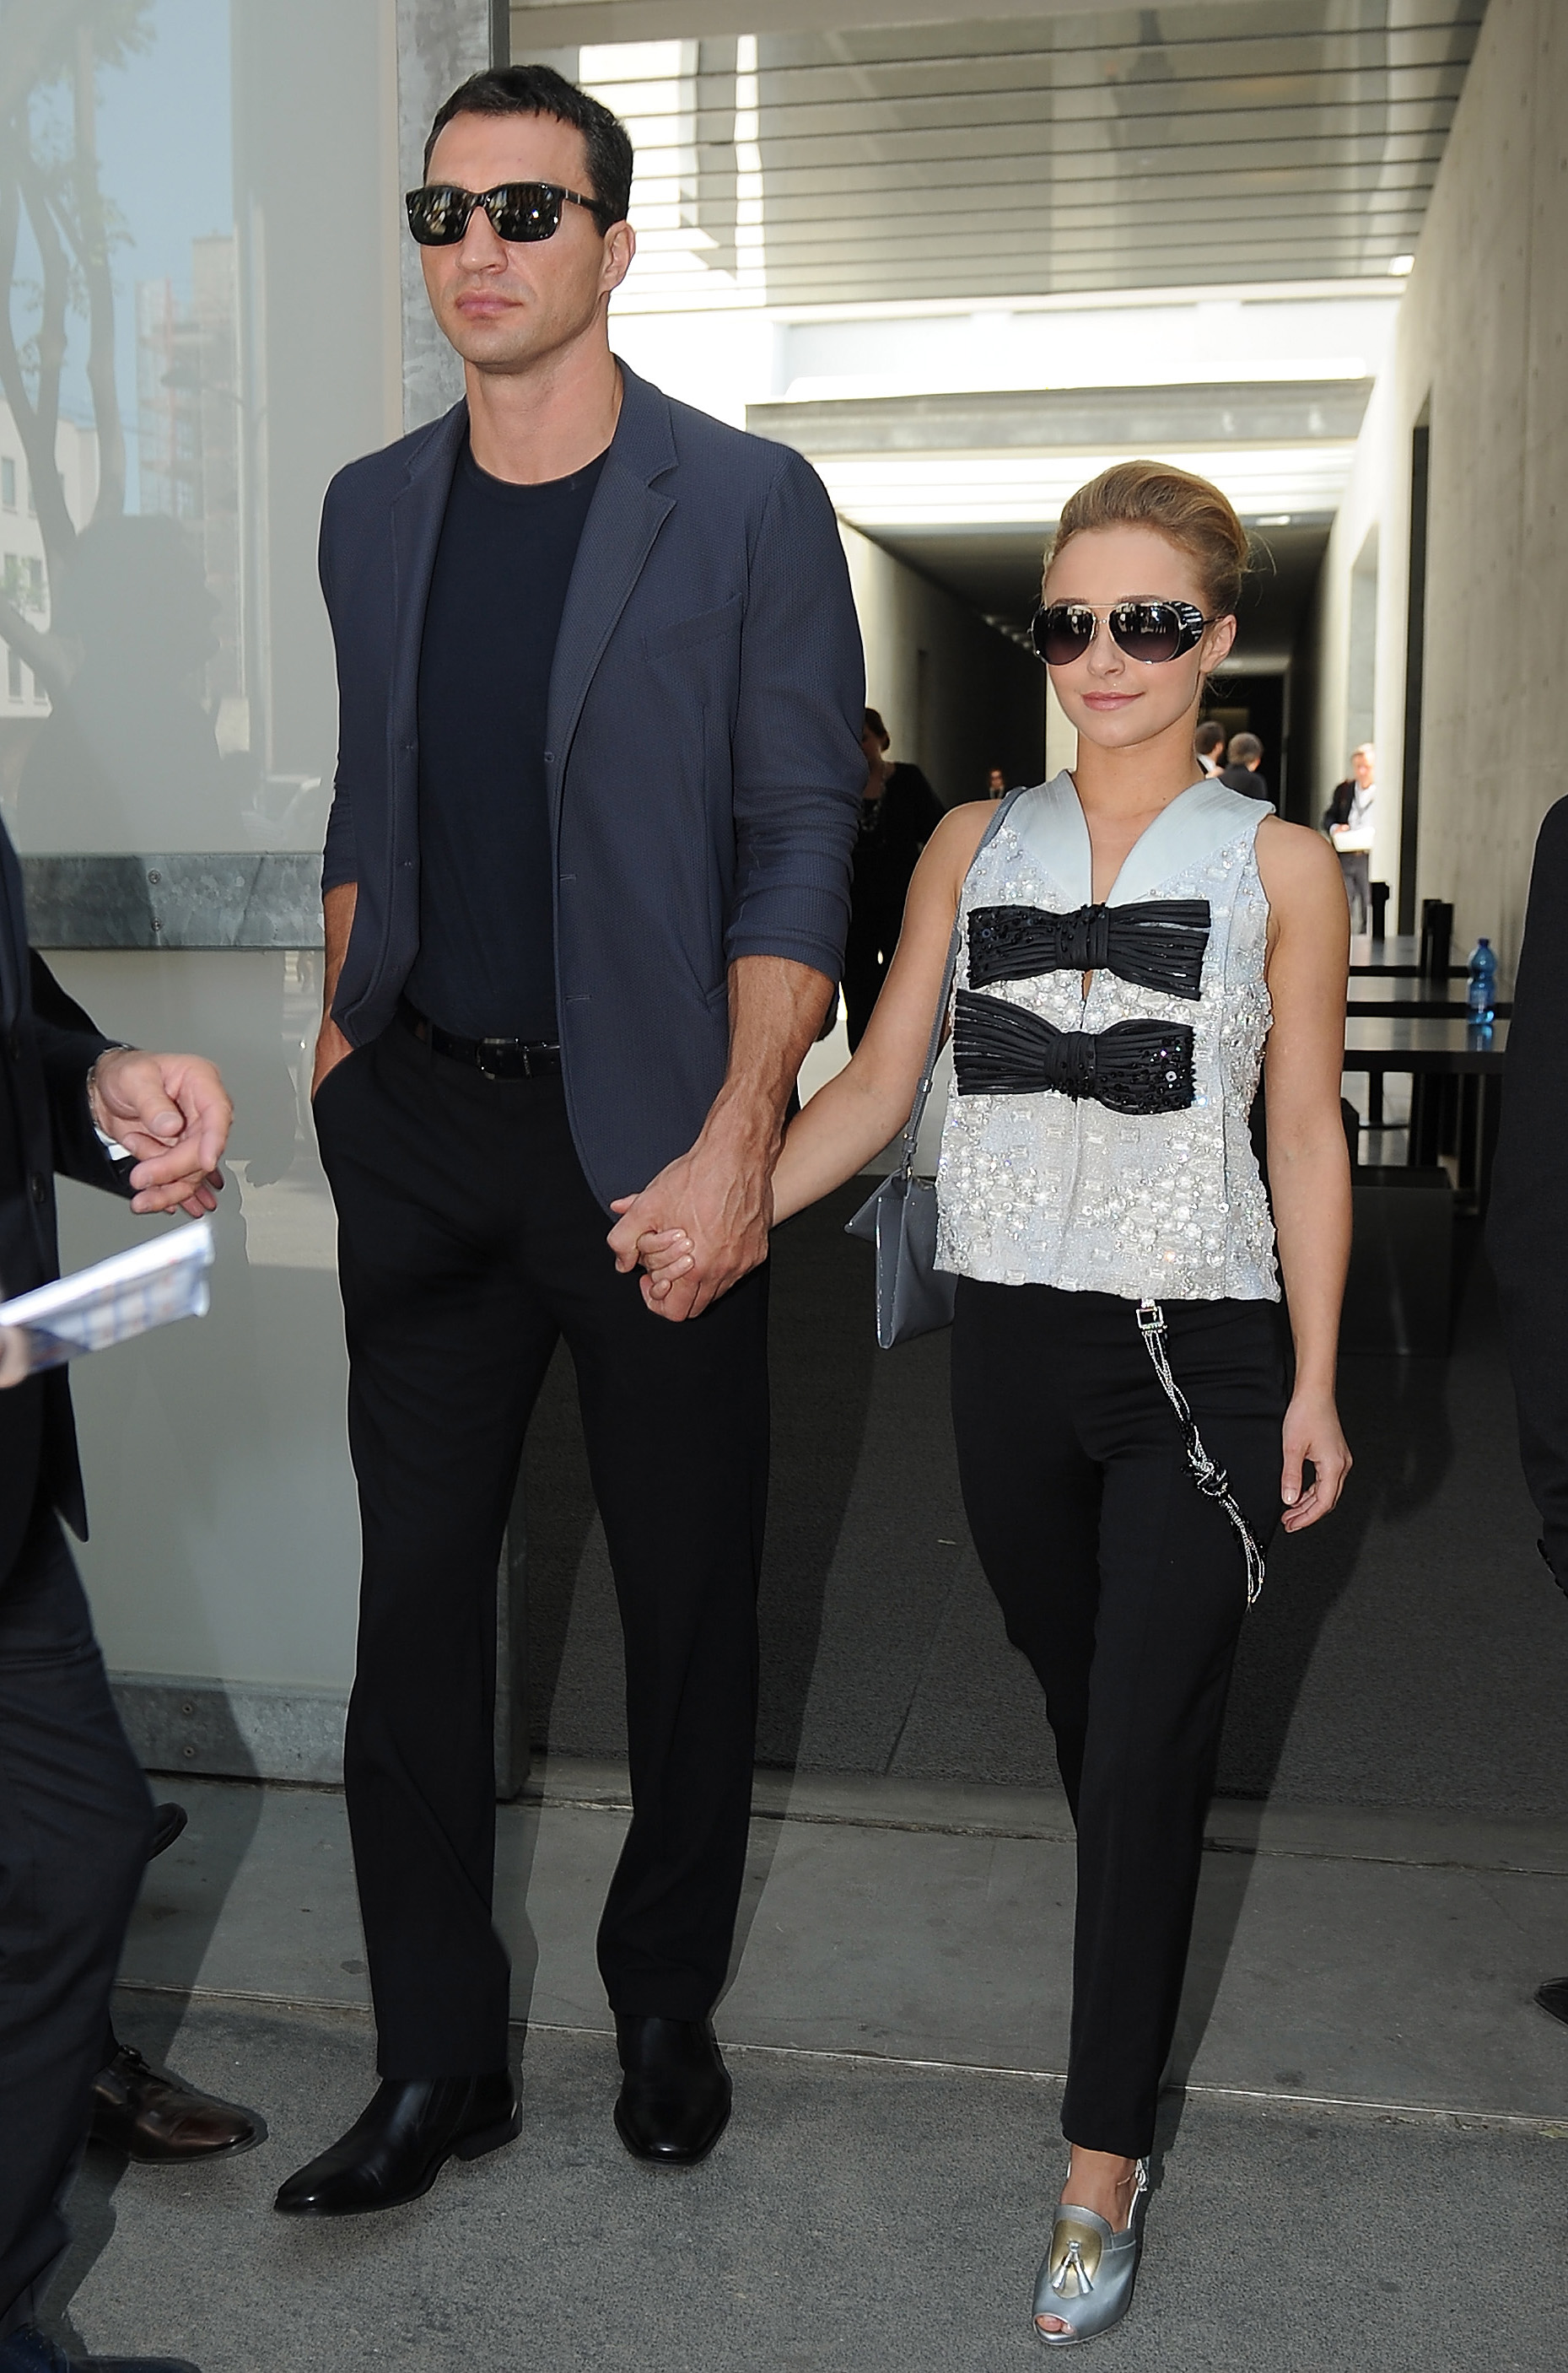 See These 11 Celebrity Couples With Crazy Height Differences - Life